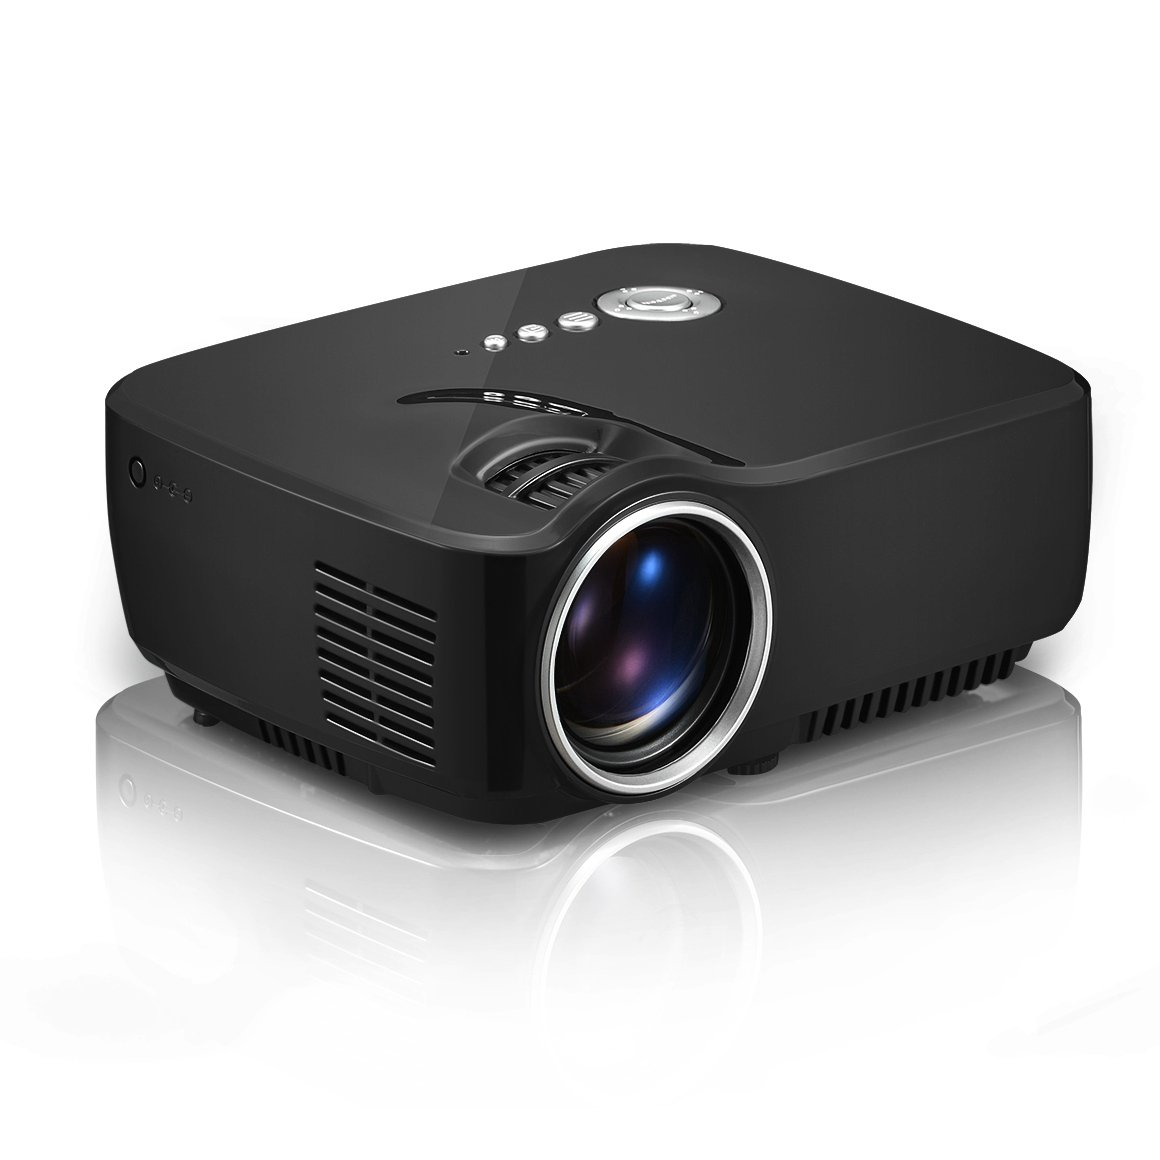 Simplebeamer GP70 LED Projector 1200 lumens 800*480 Multimedia Beamer Mini Portable 1080p Video Game Projectors support USB/TF/VGA/HDMI/AV Port for Home Theater( Black)